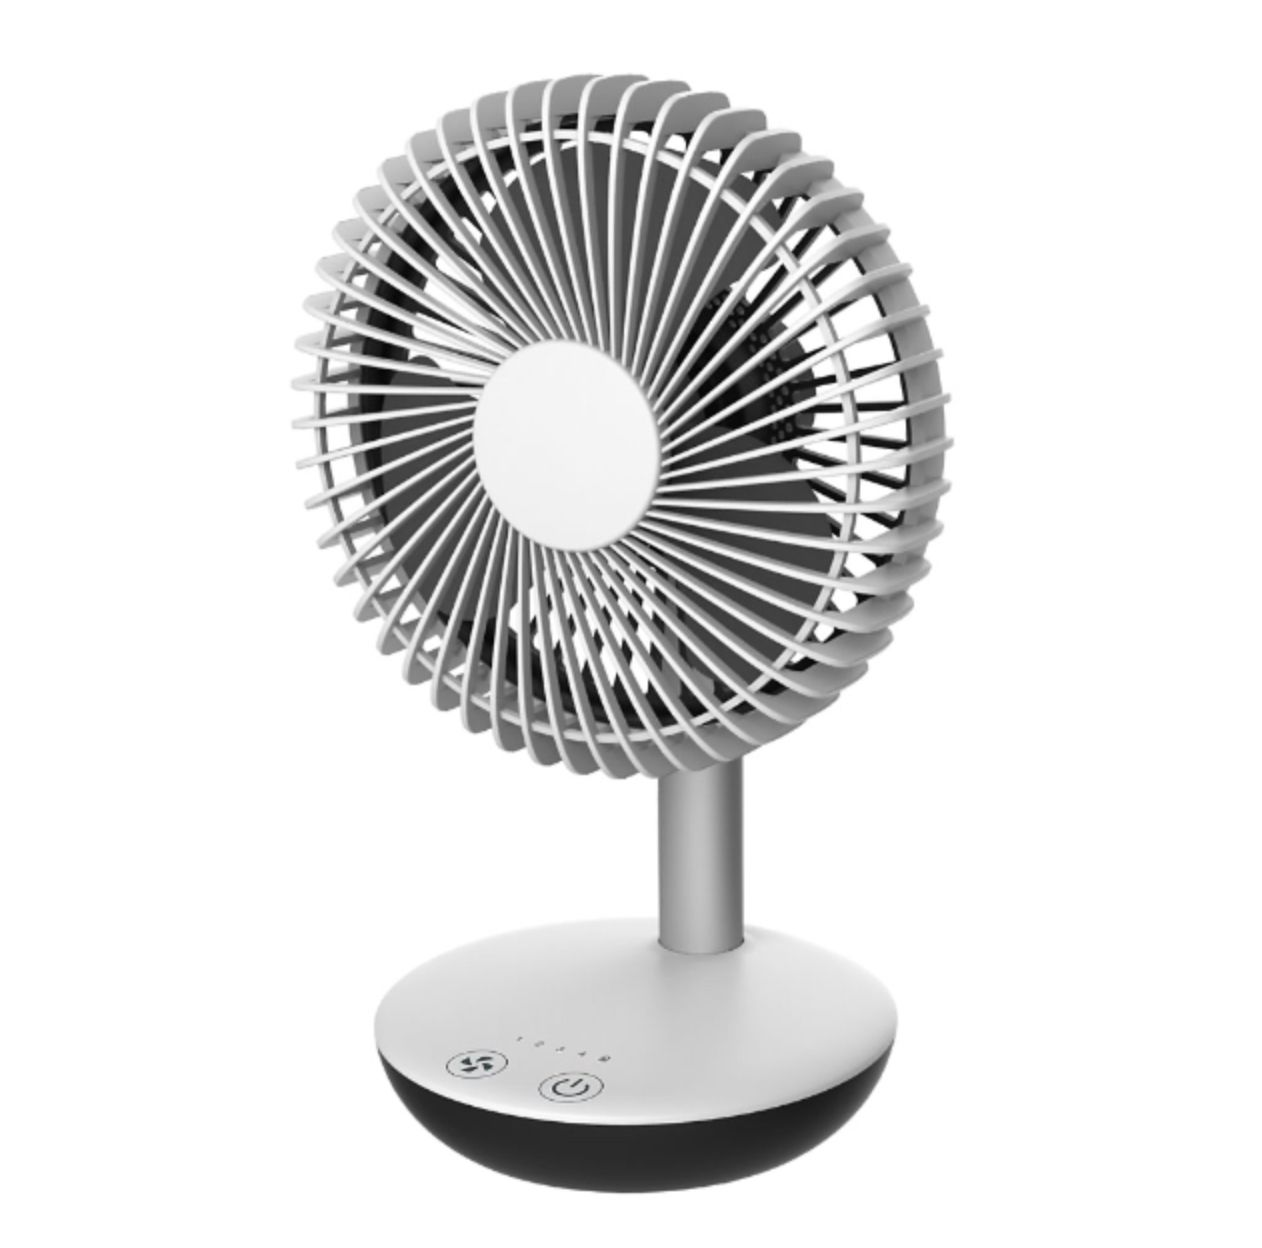 Hacking the hardware store fan